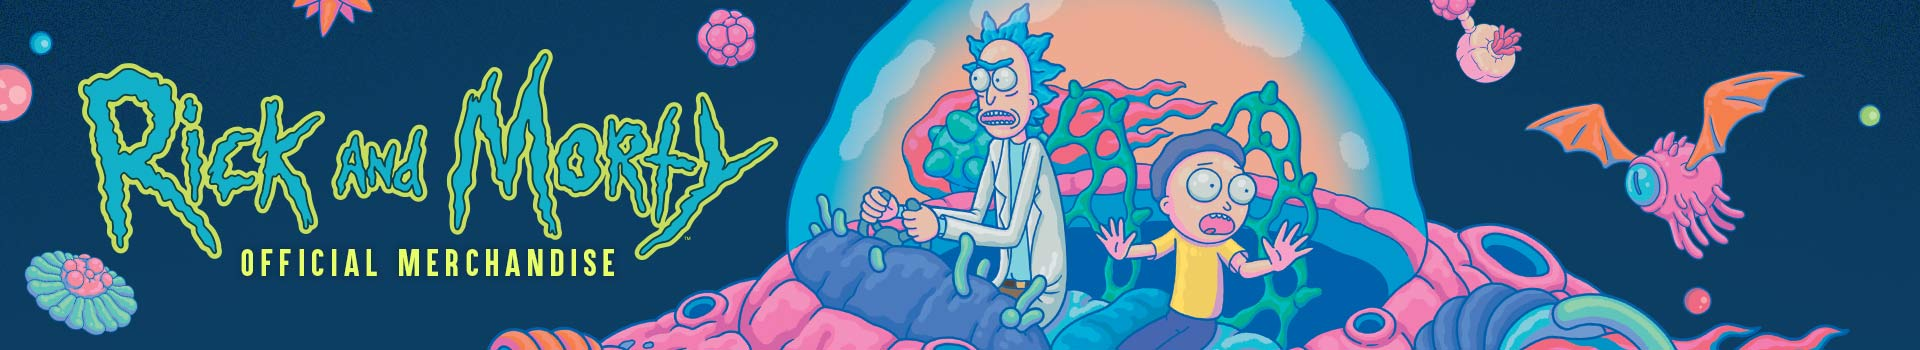 R&M Top banner